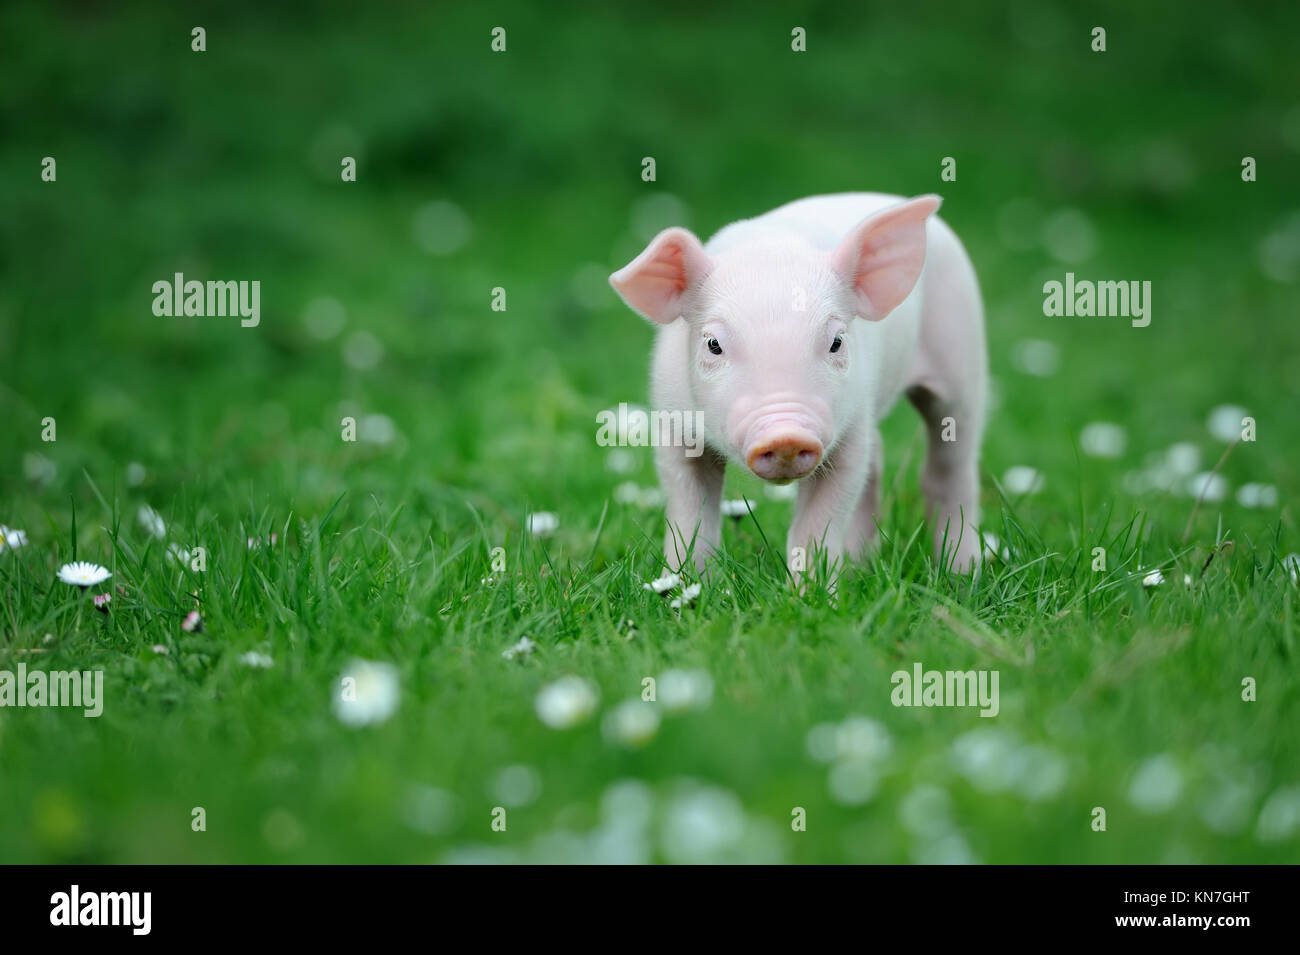 Young pig on a spring green grass - Stock Image